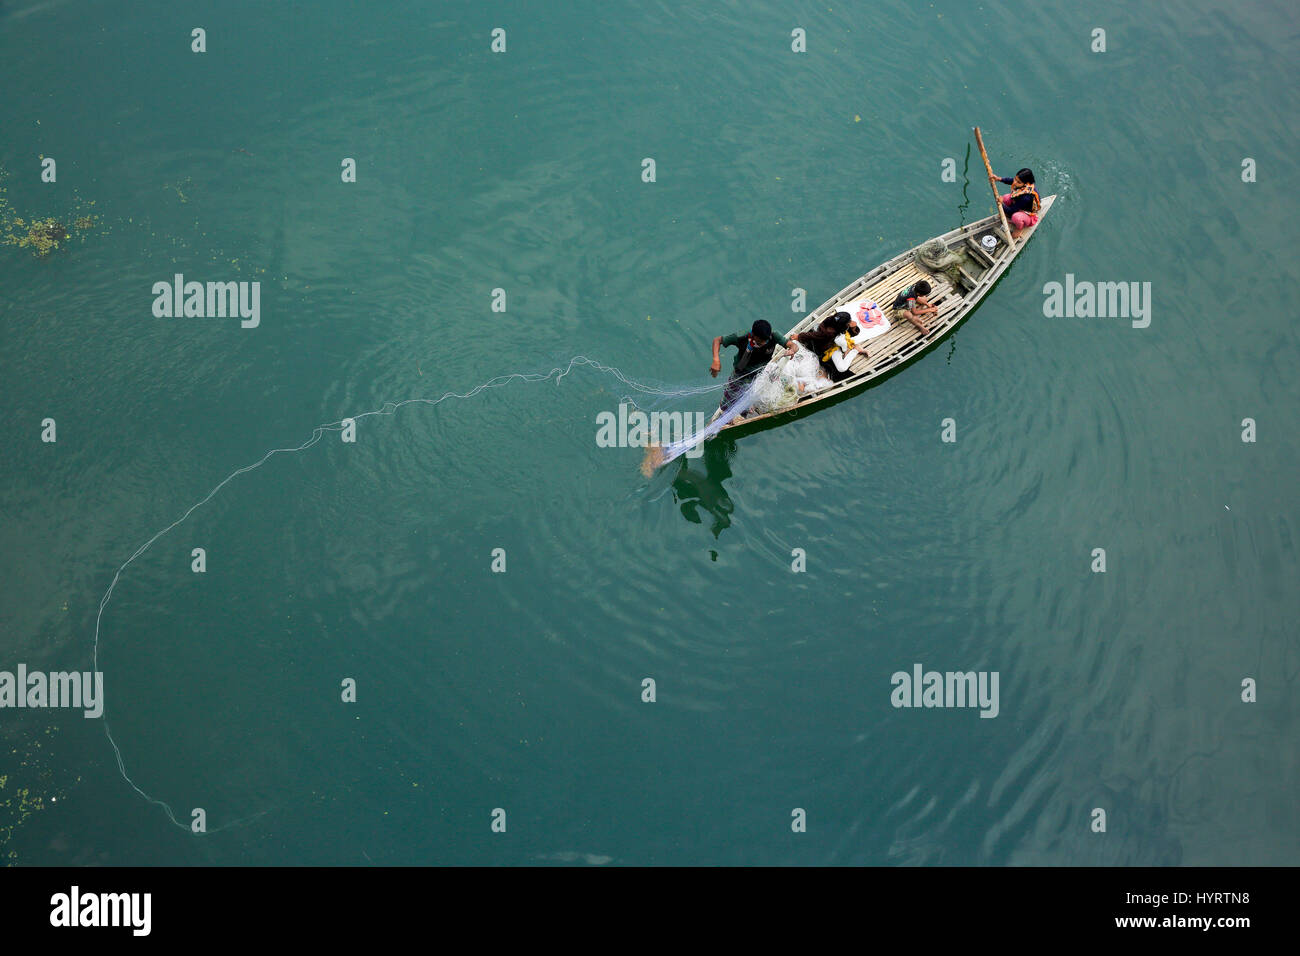 Fishermen fishing on the Bangali River, Bogra, Bangladesh. - Stock Image